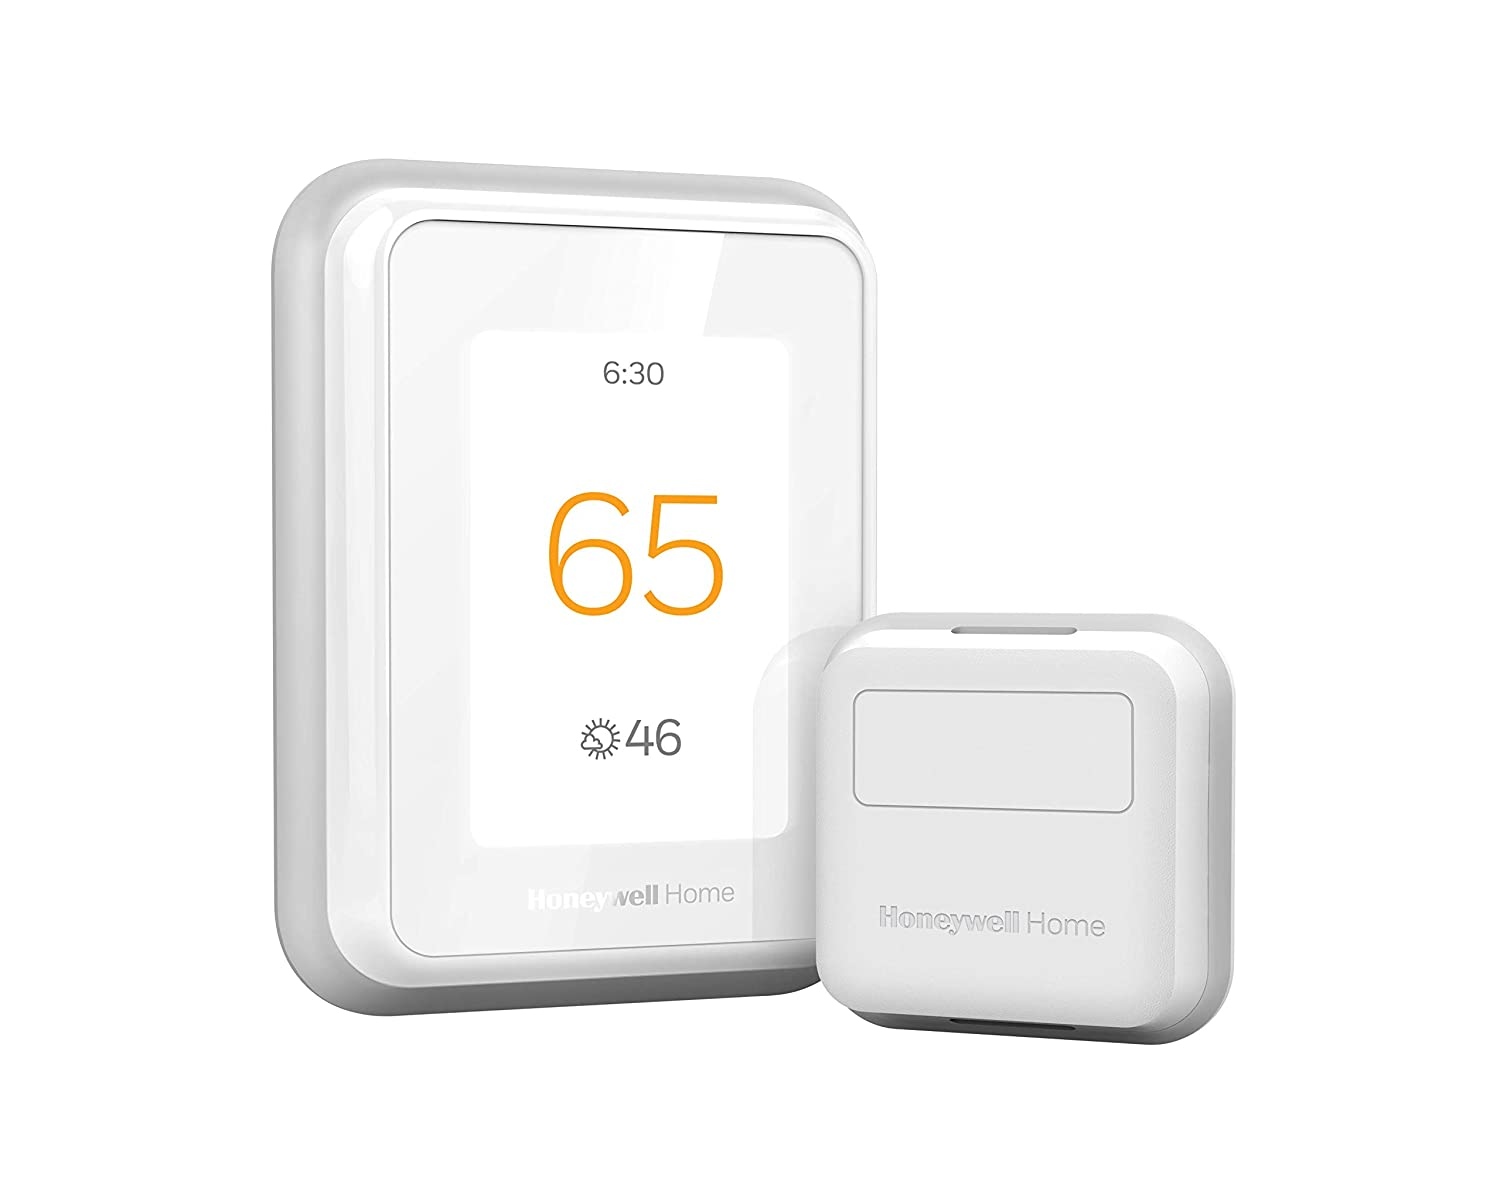 Honeywell Home T9 WIFI Smart Thermostat with 1 Smart Room Sensor, Touchscreen Display, Alexa and Google Assist